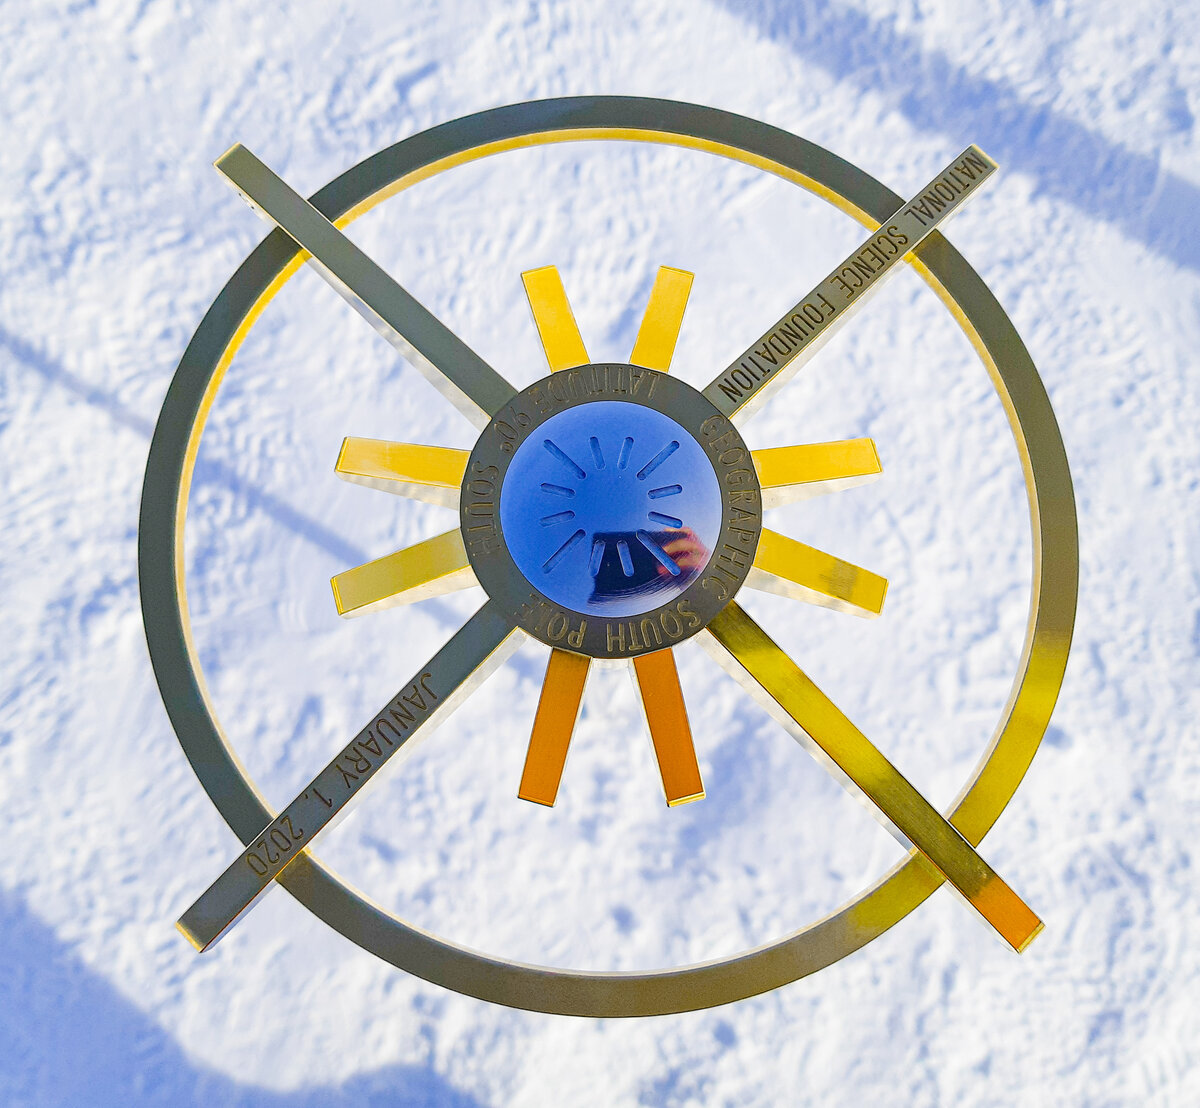 2020 Geographic South Pole Marker